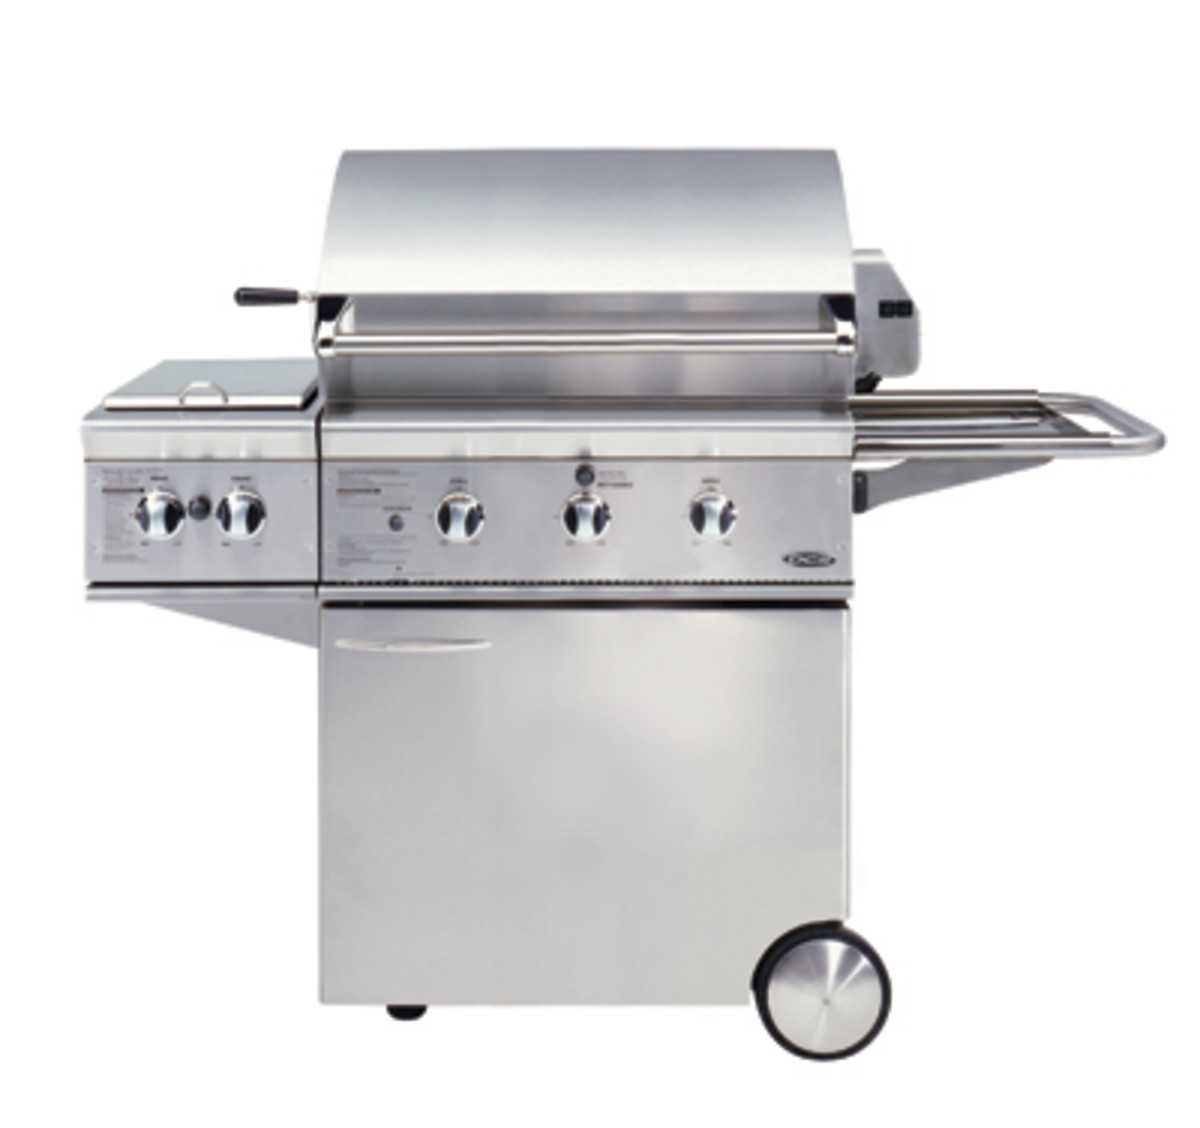 "The DCS 30 models were always a little different from the rest of the DCS models.  Here a DCS 30"" gas bbq grill on a portable cart is shown with a double side burner that replaced one side shelf."